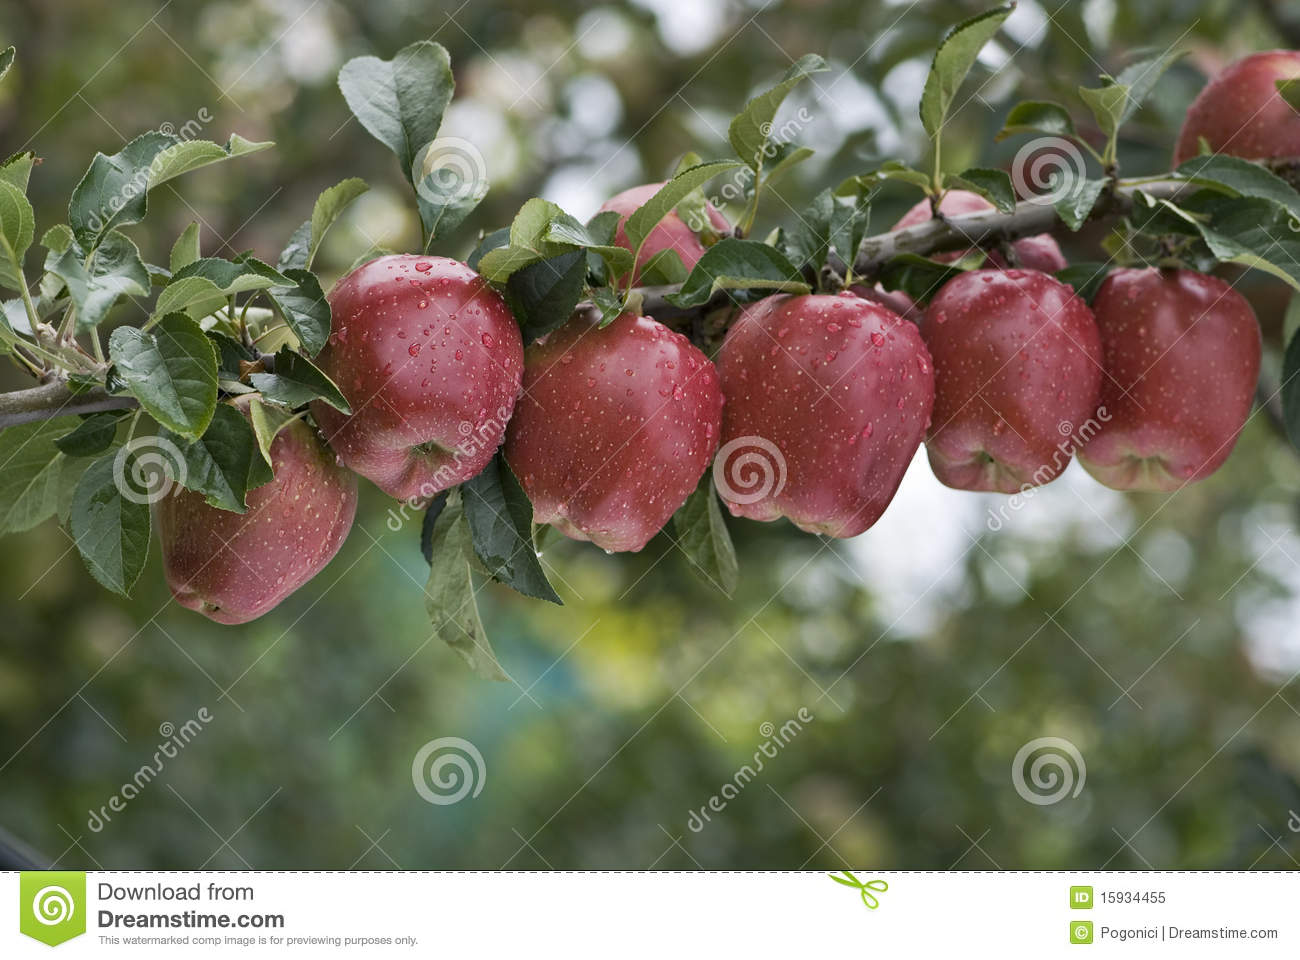 A line of apples